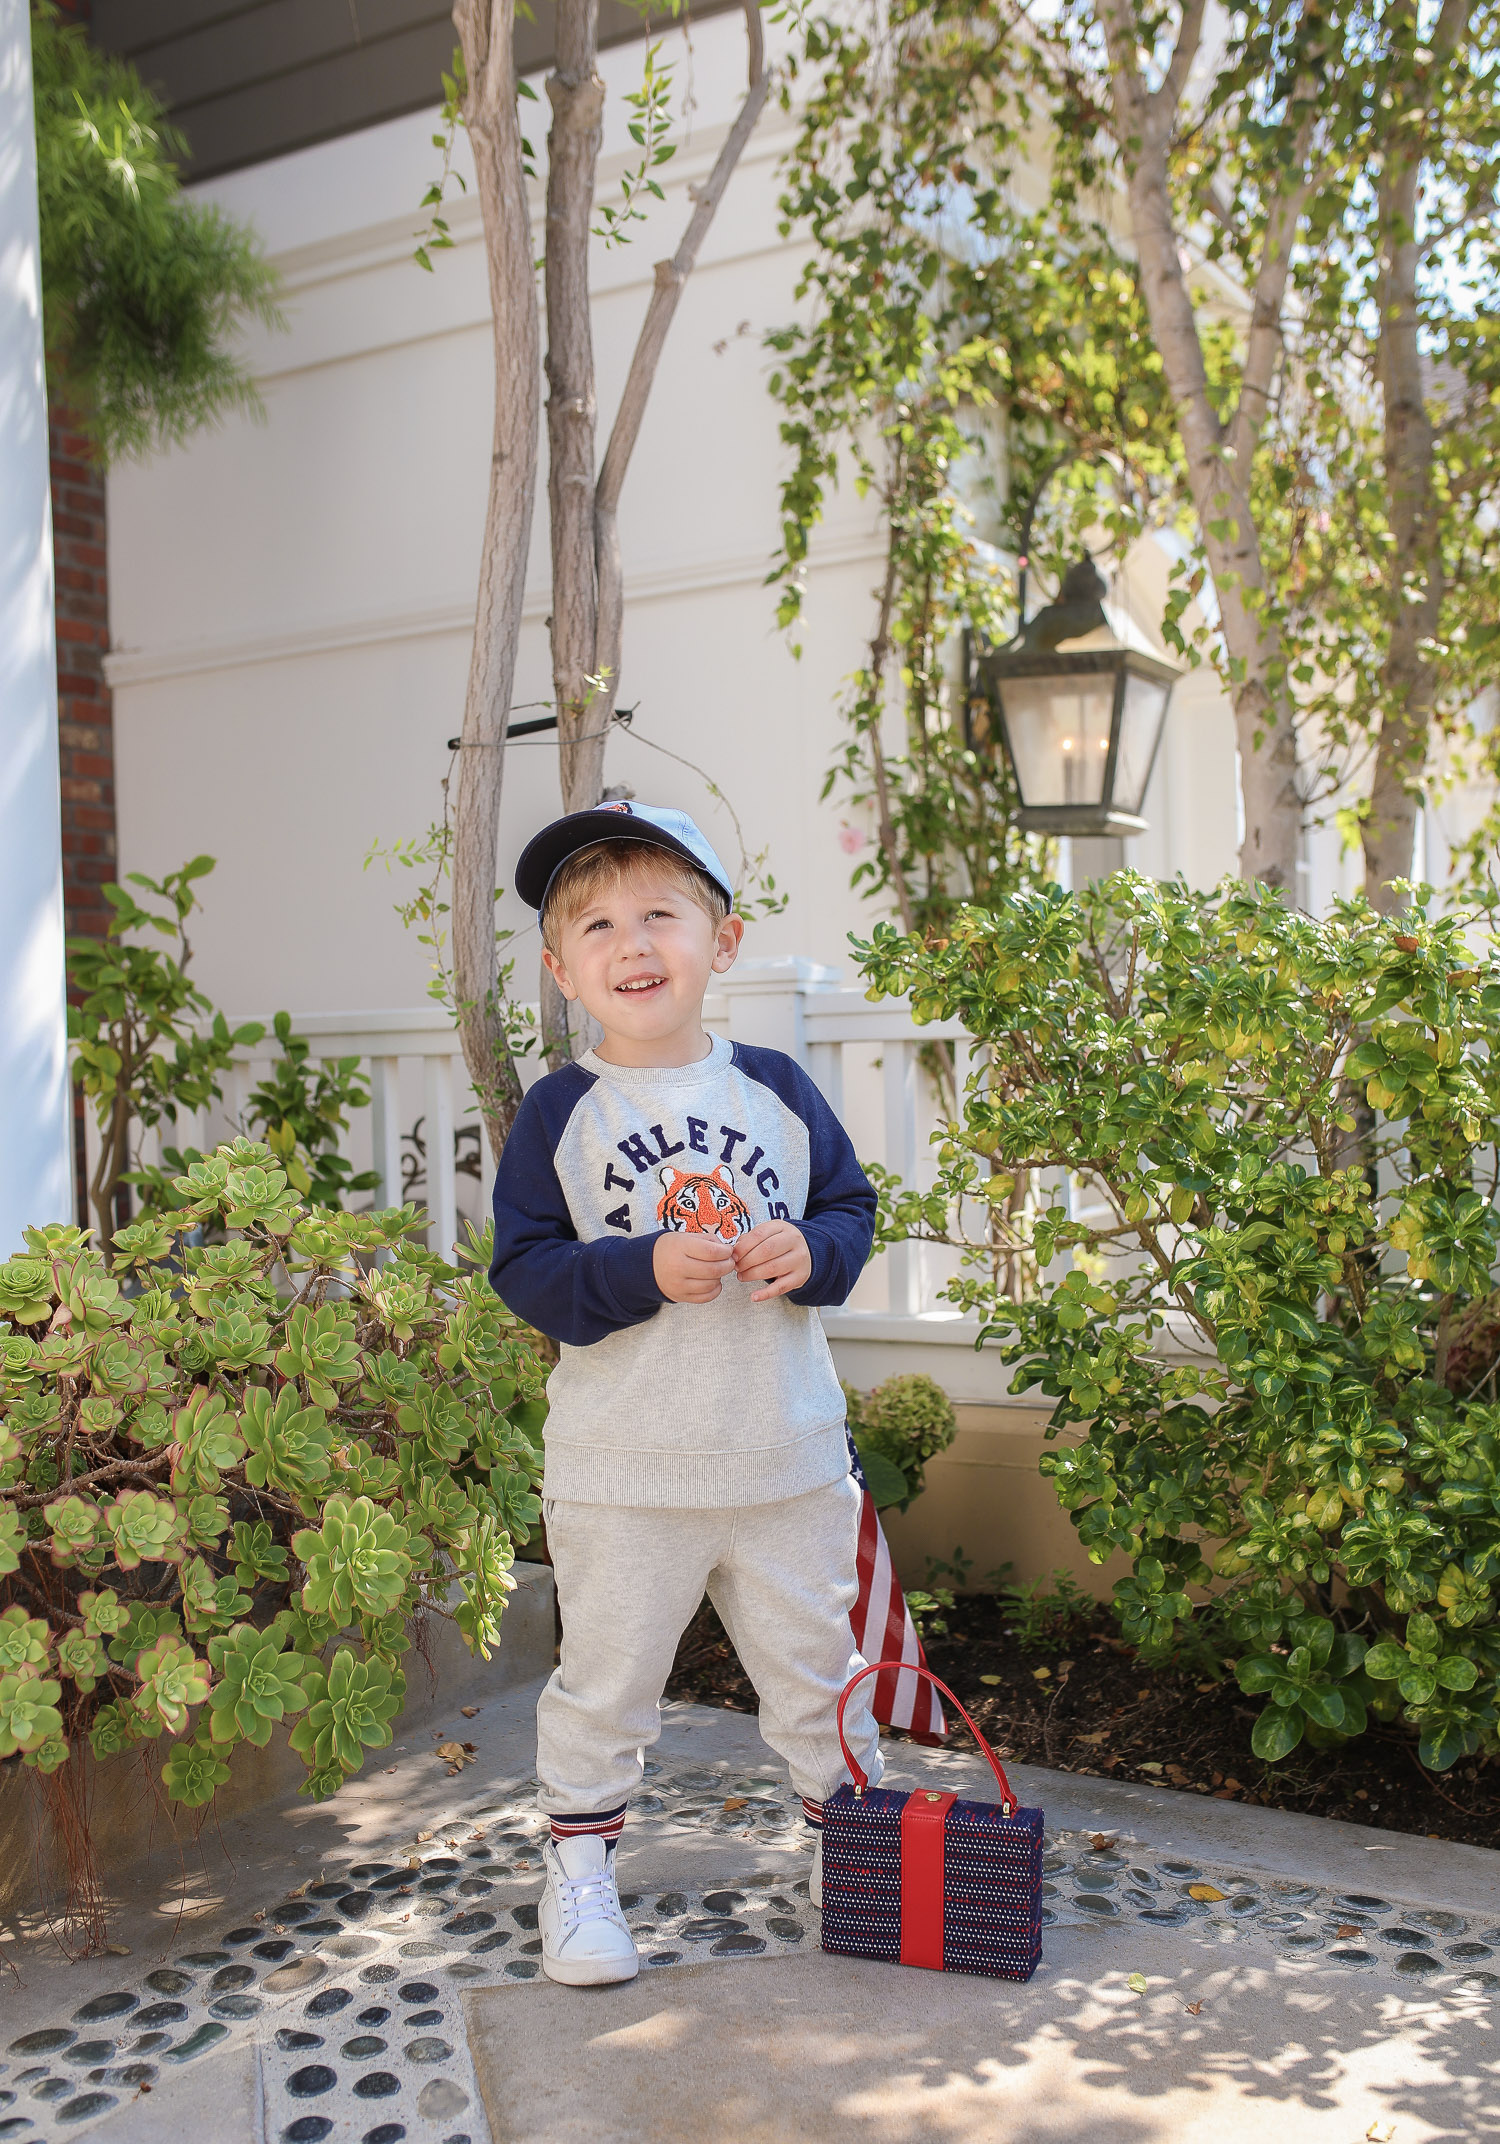 Janie and Jack by popular US fashion Blog, The Sweetest Thing: image of a young boy sitting outside on the ground in Newport Beach, CA and wearing a Janie and Jack TIGER PATCH CAP, Janie and Jack RAGLAN TIGER SWEATSHIRT, Janie and Jack STRIPE TRIM JOGGER.